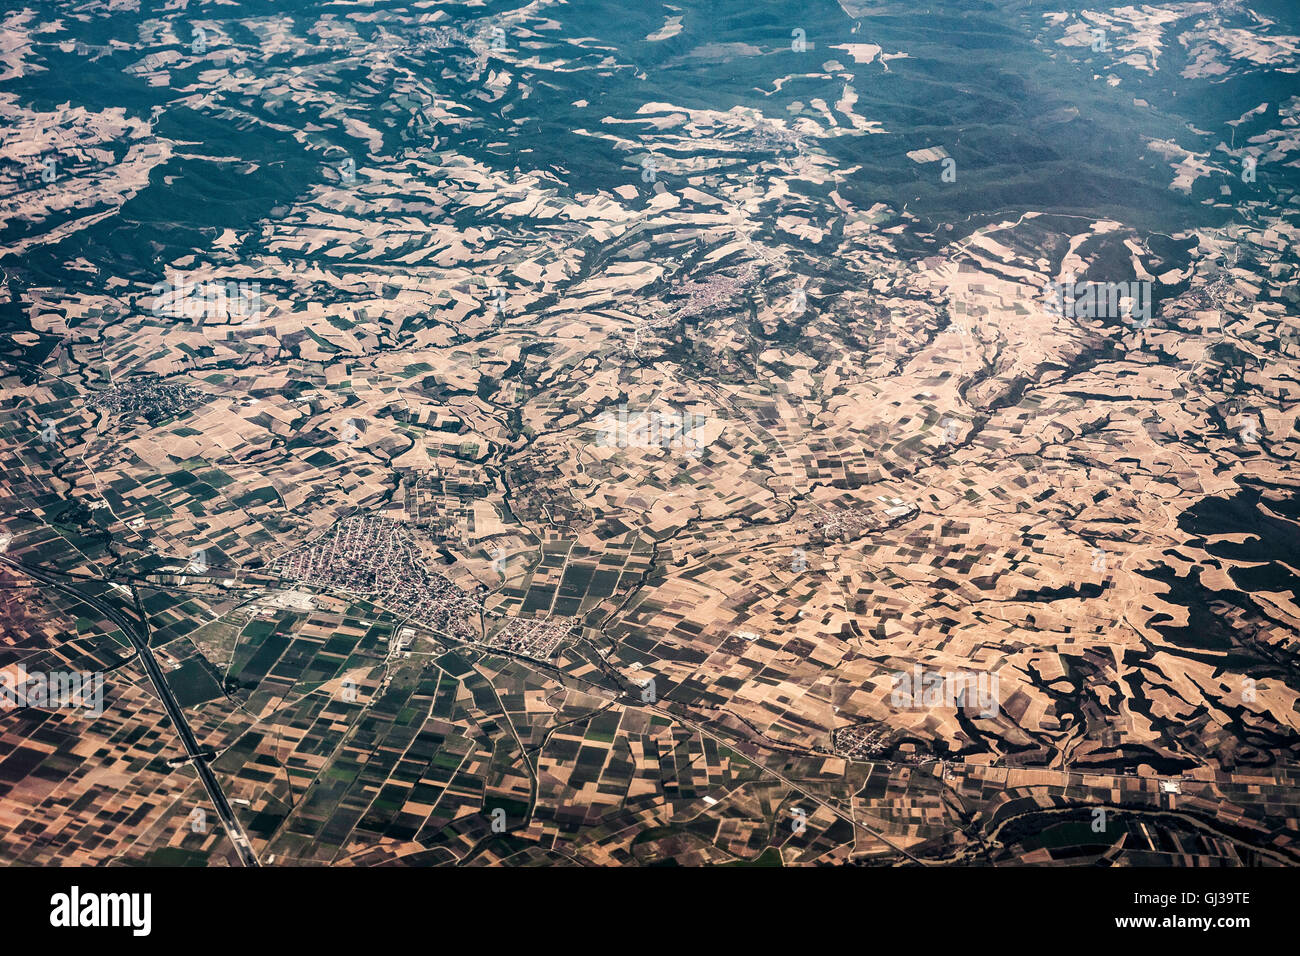 Aerial view of Greek mainland, - Stock Image